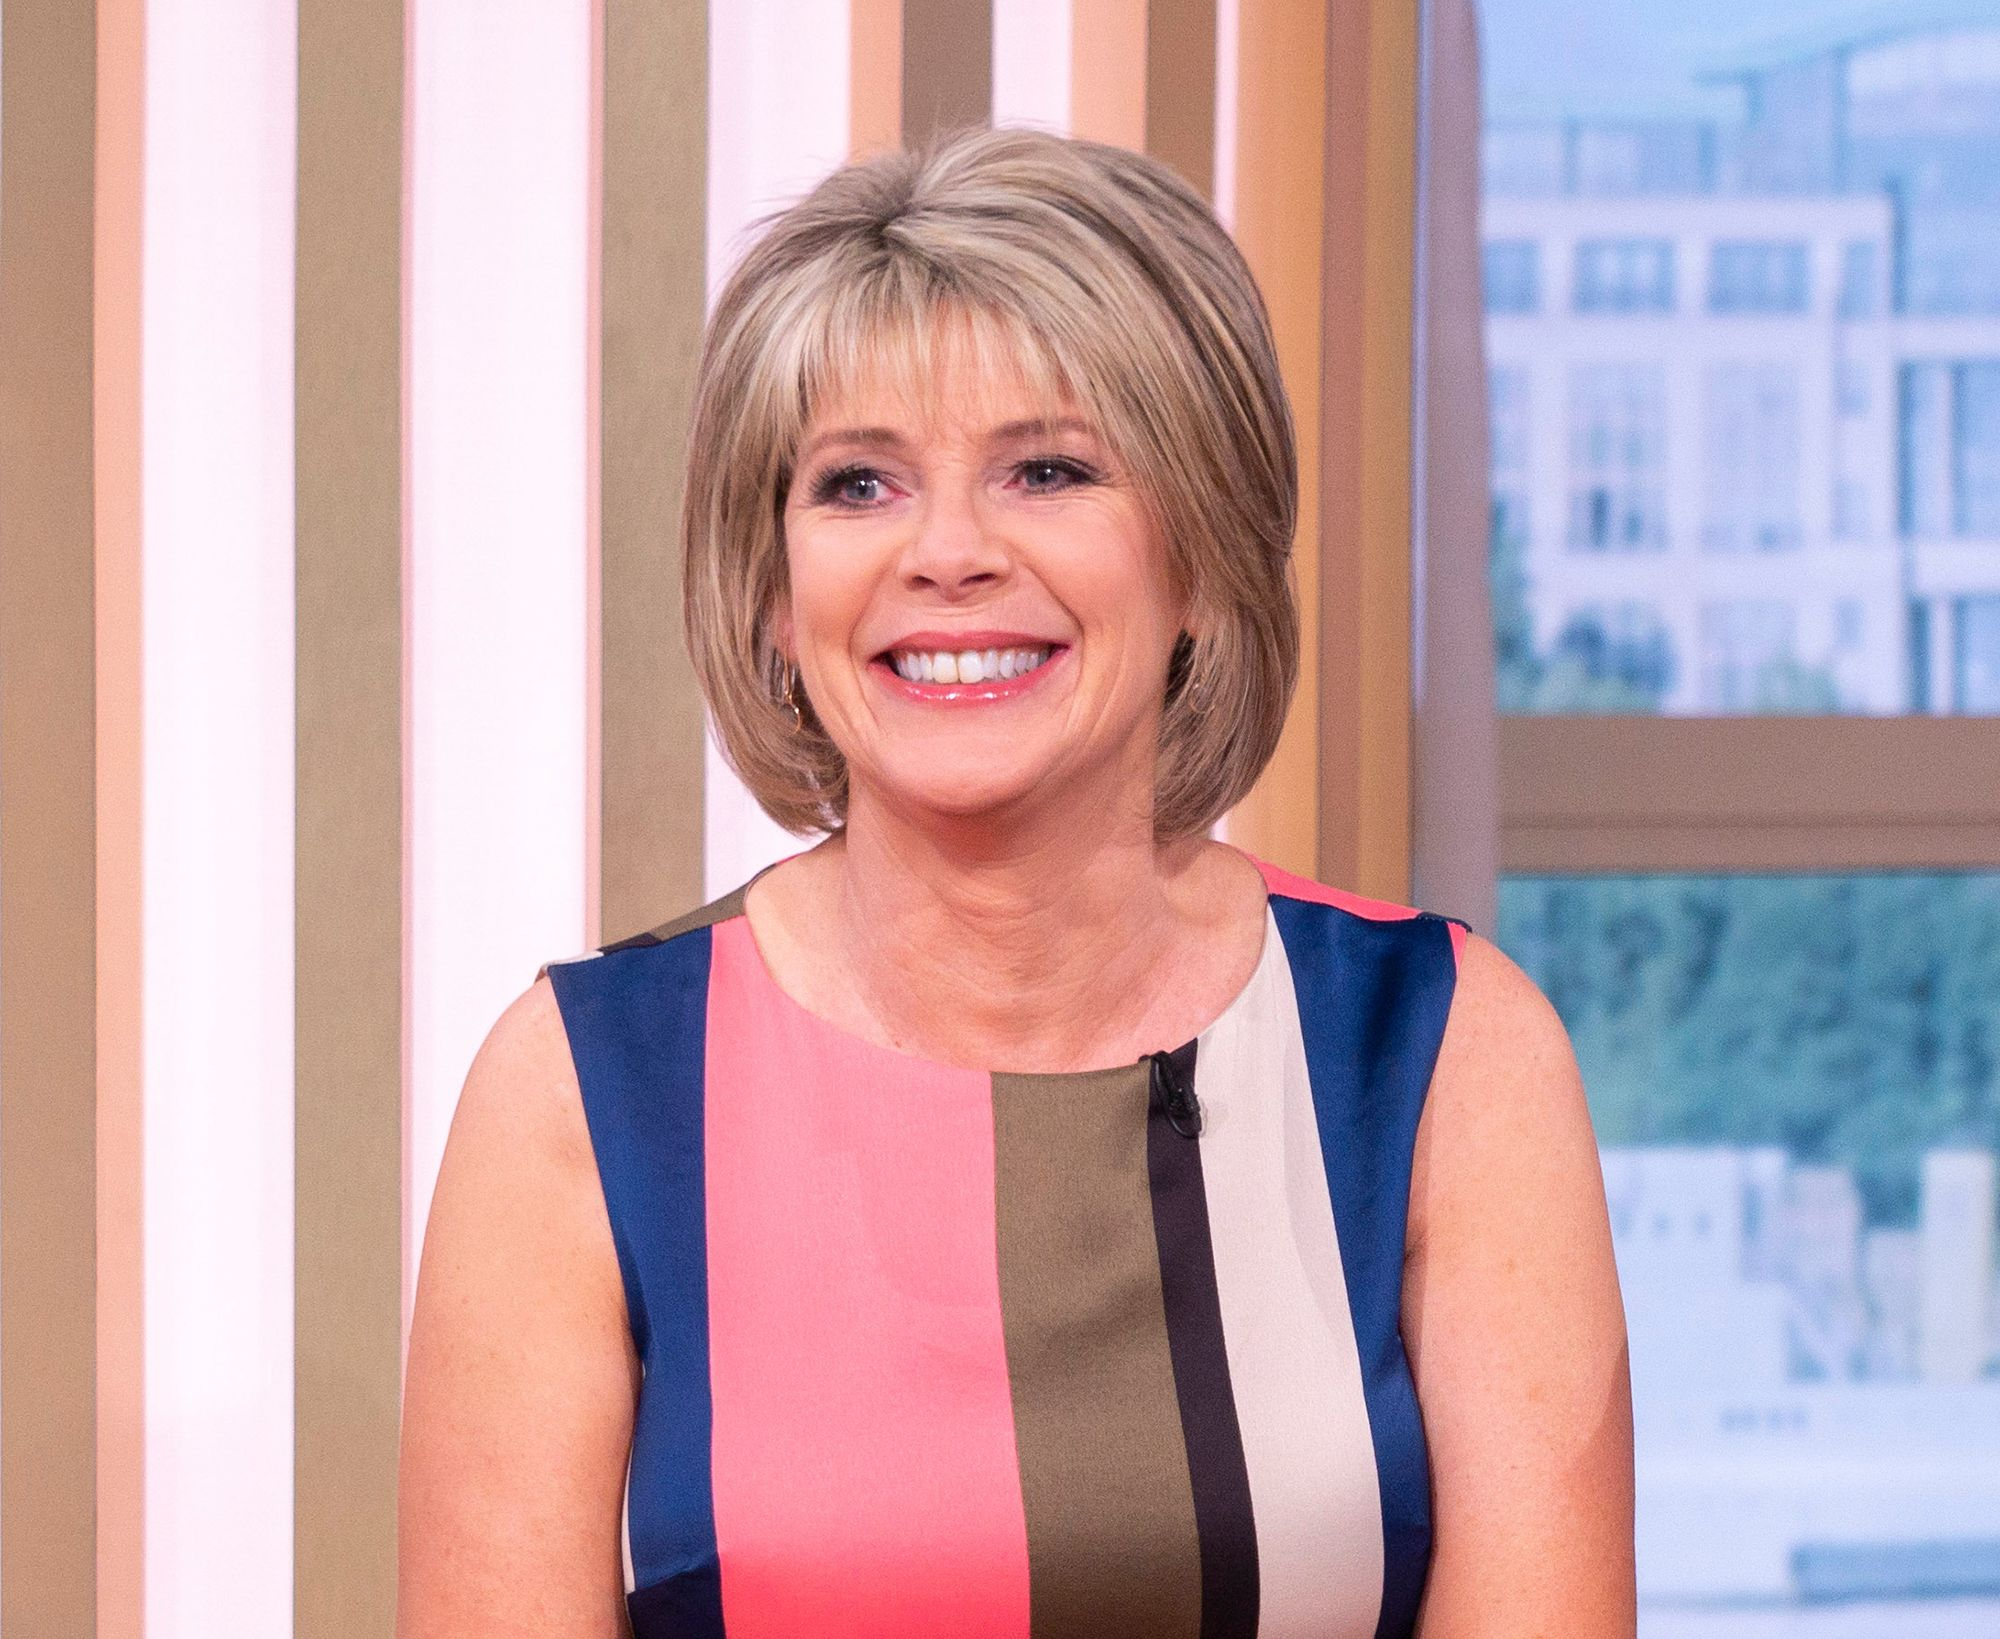 Ruth Langsford's stunning shirt dress is from a sustainable brand